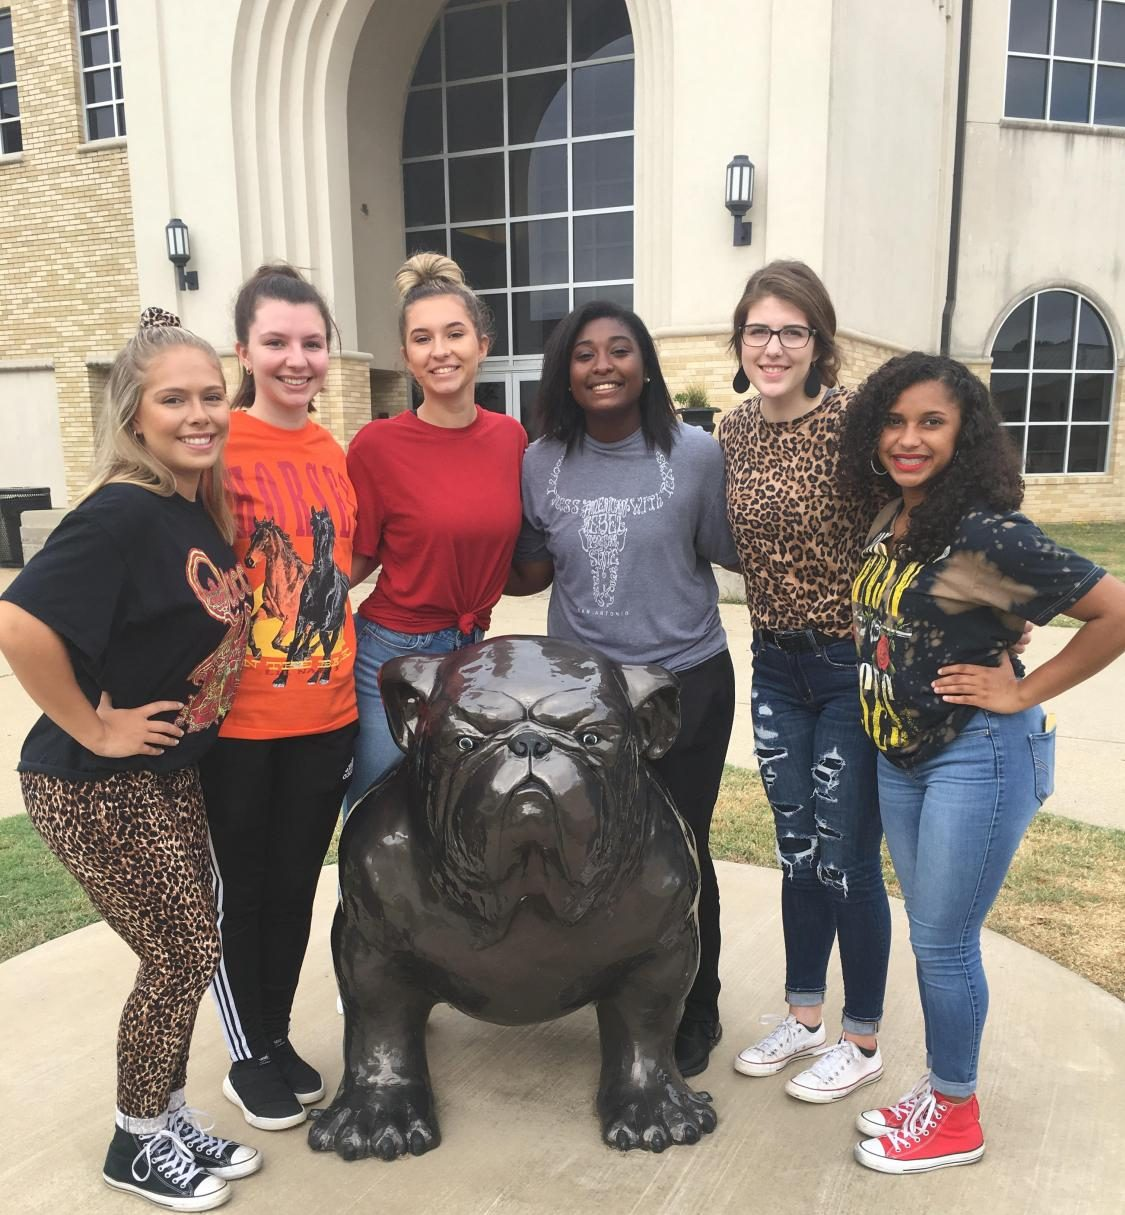 From left to right; Jordan Ware (PASS), Lauren Couch (Yearbook), Julia Greene (Hi-Steppers), Diamond Smith (Softball), Dayton McElyea (FFA), and Olivia Chalk (Sports Medicine).